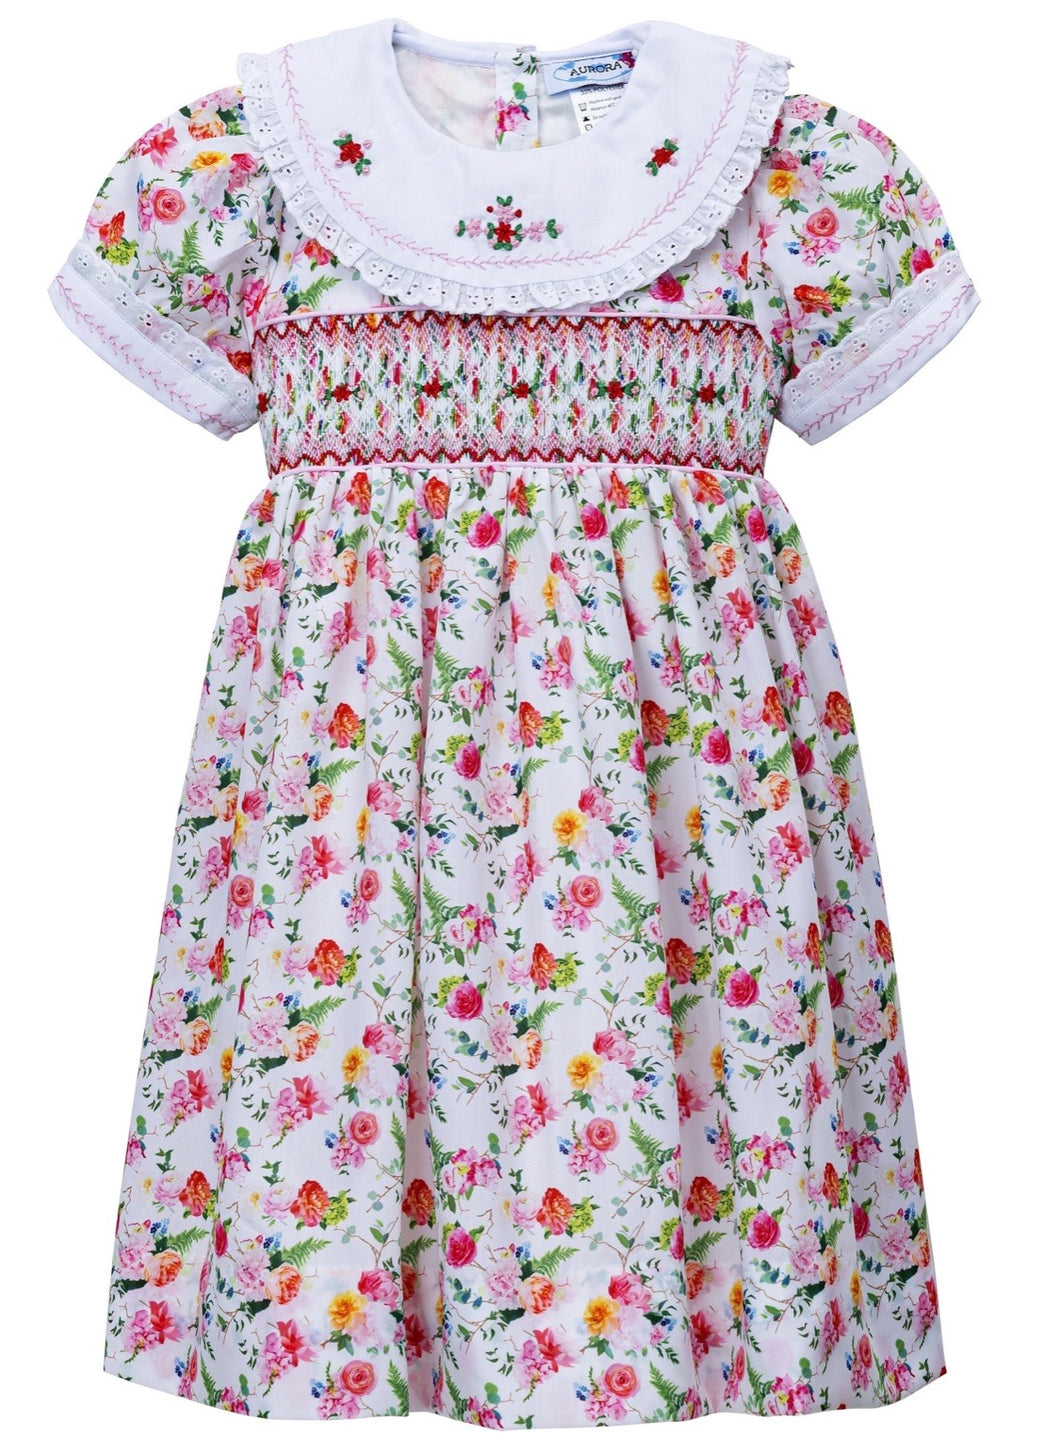 Rose & Peony Hand Smocked Dress LIMITED EDITION